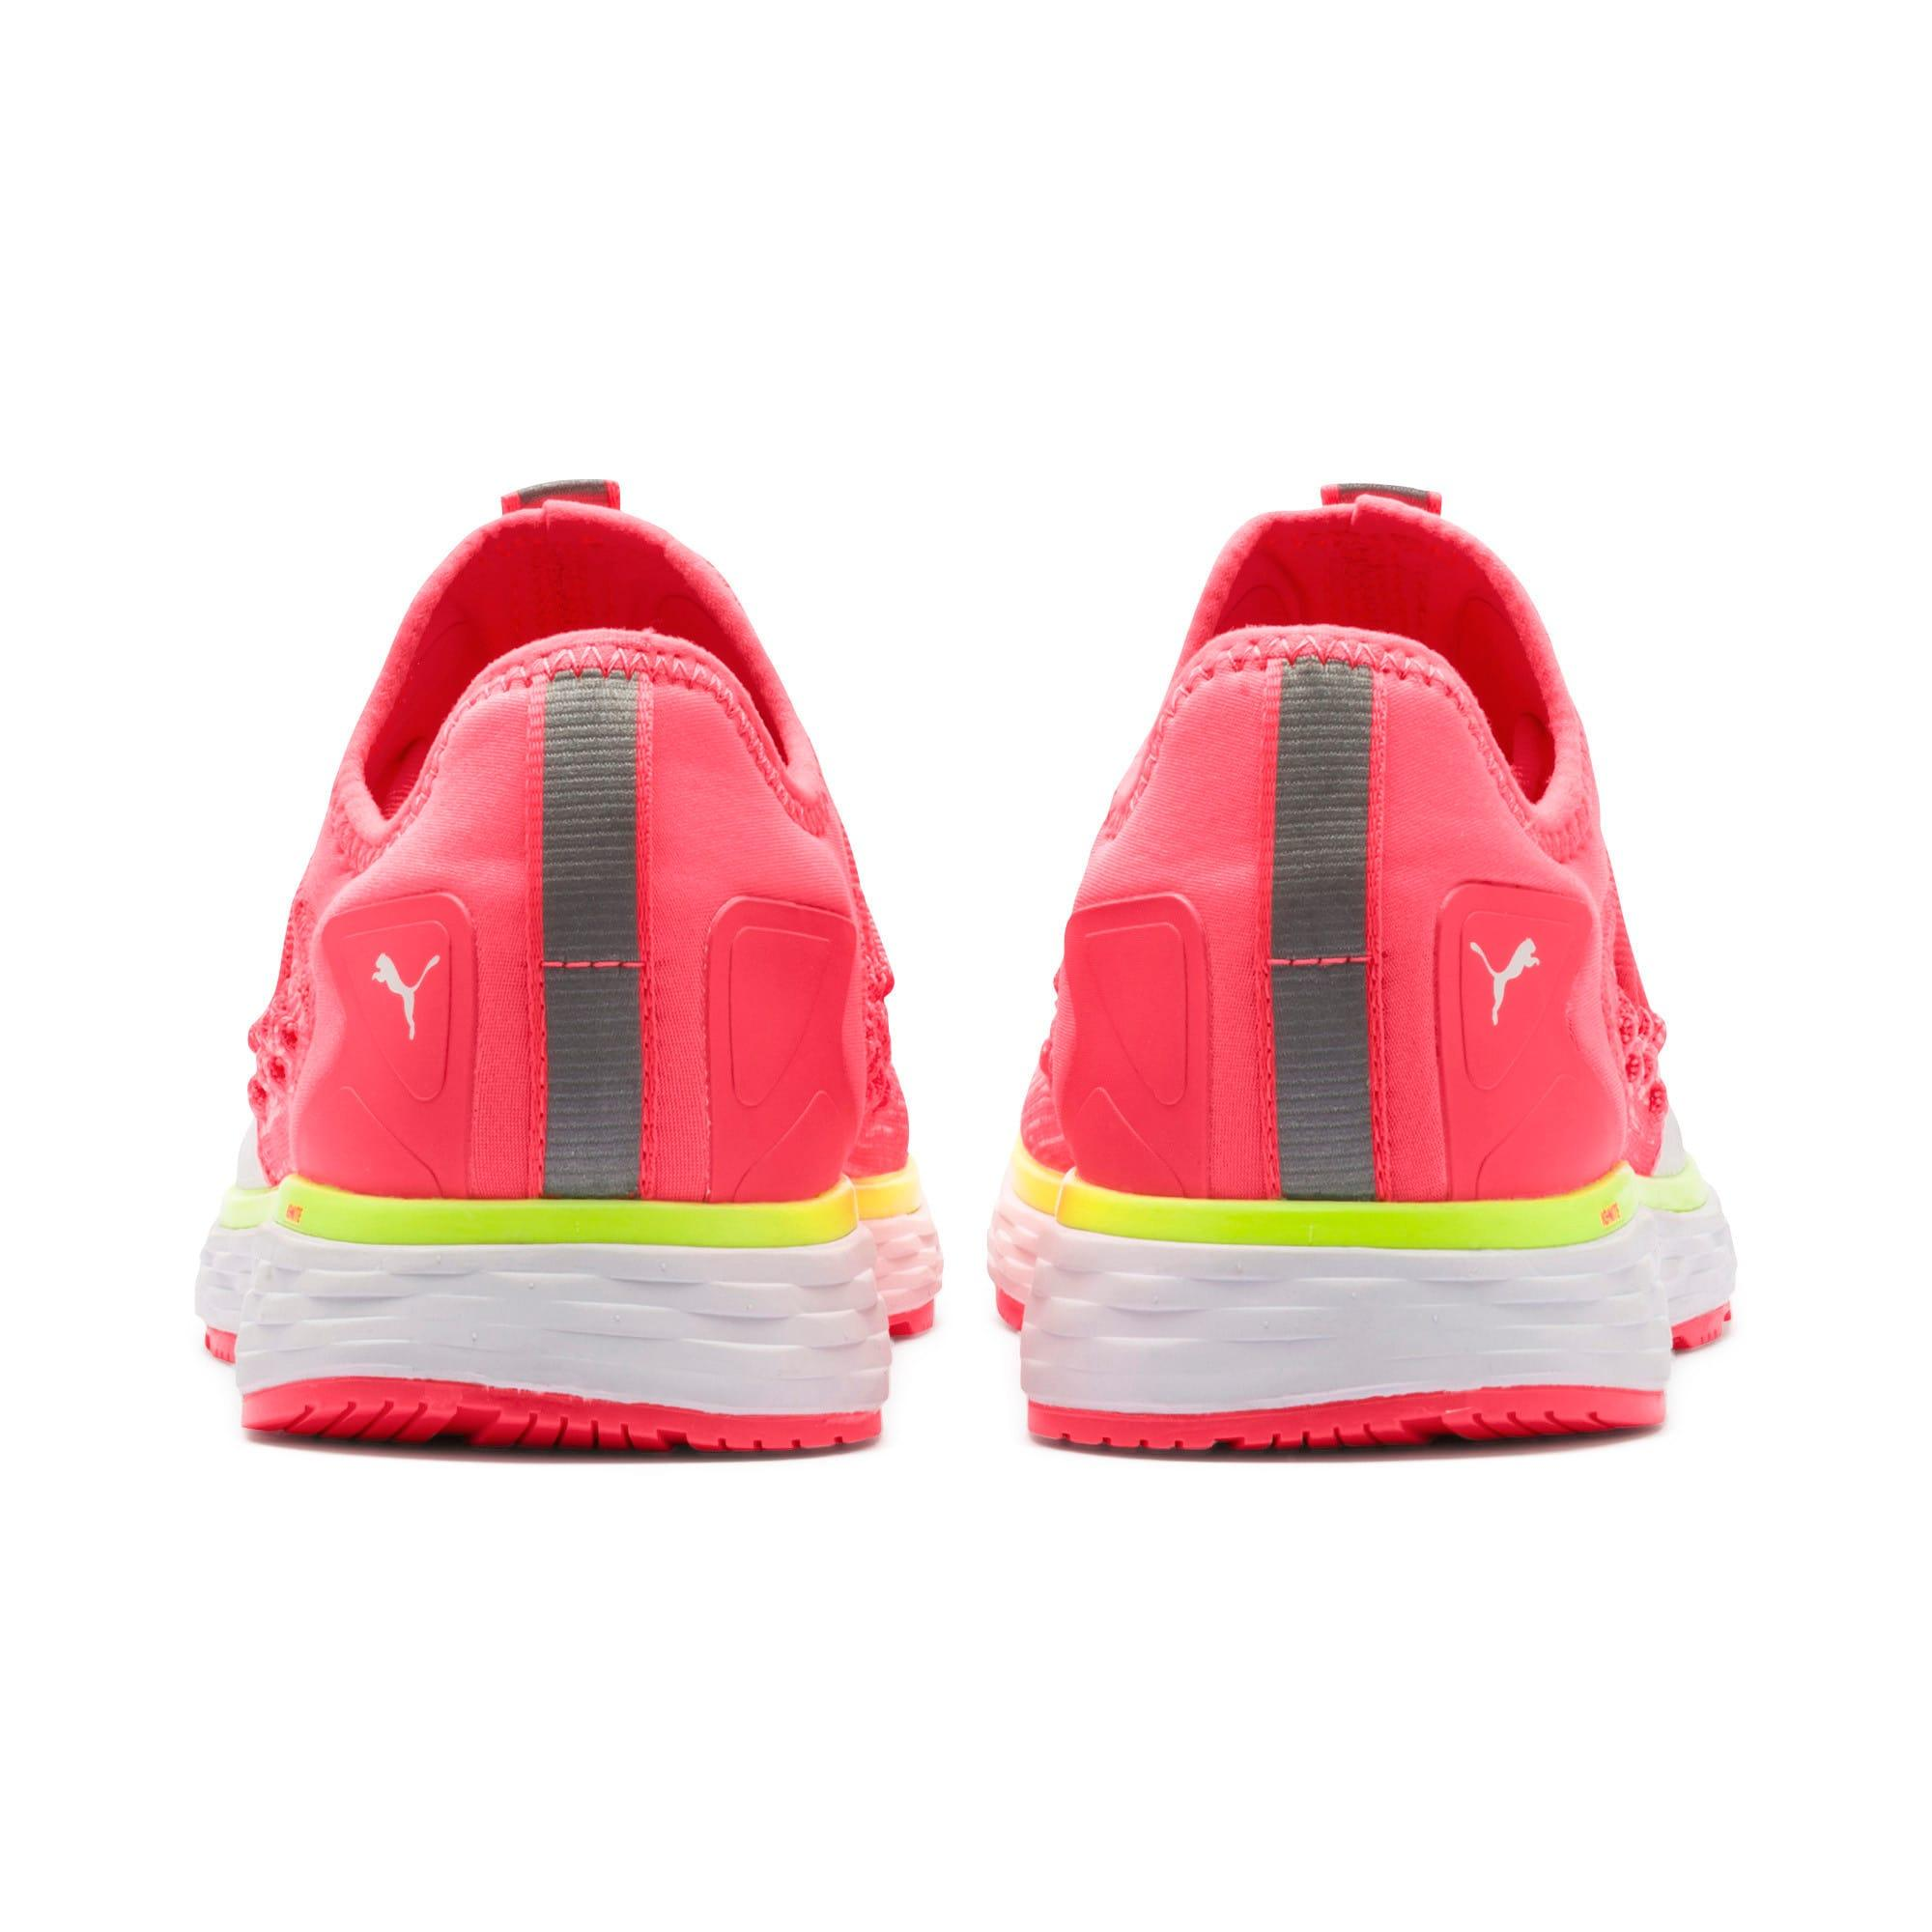 PUMA Speed 600 Fusefit Women's Running Shoes in Pink - Lyst